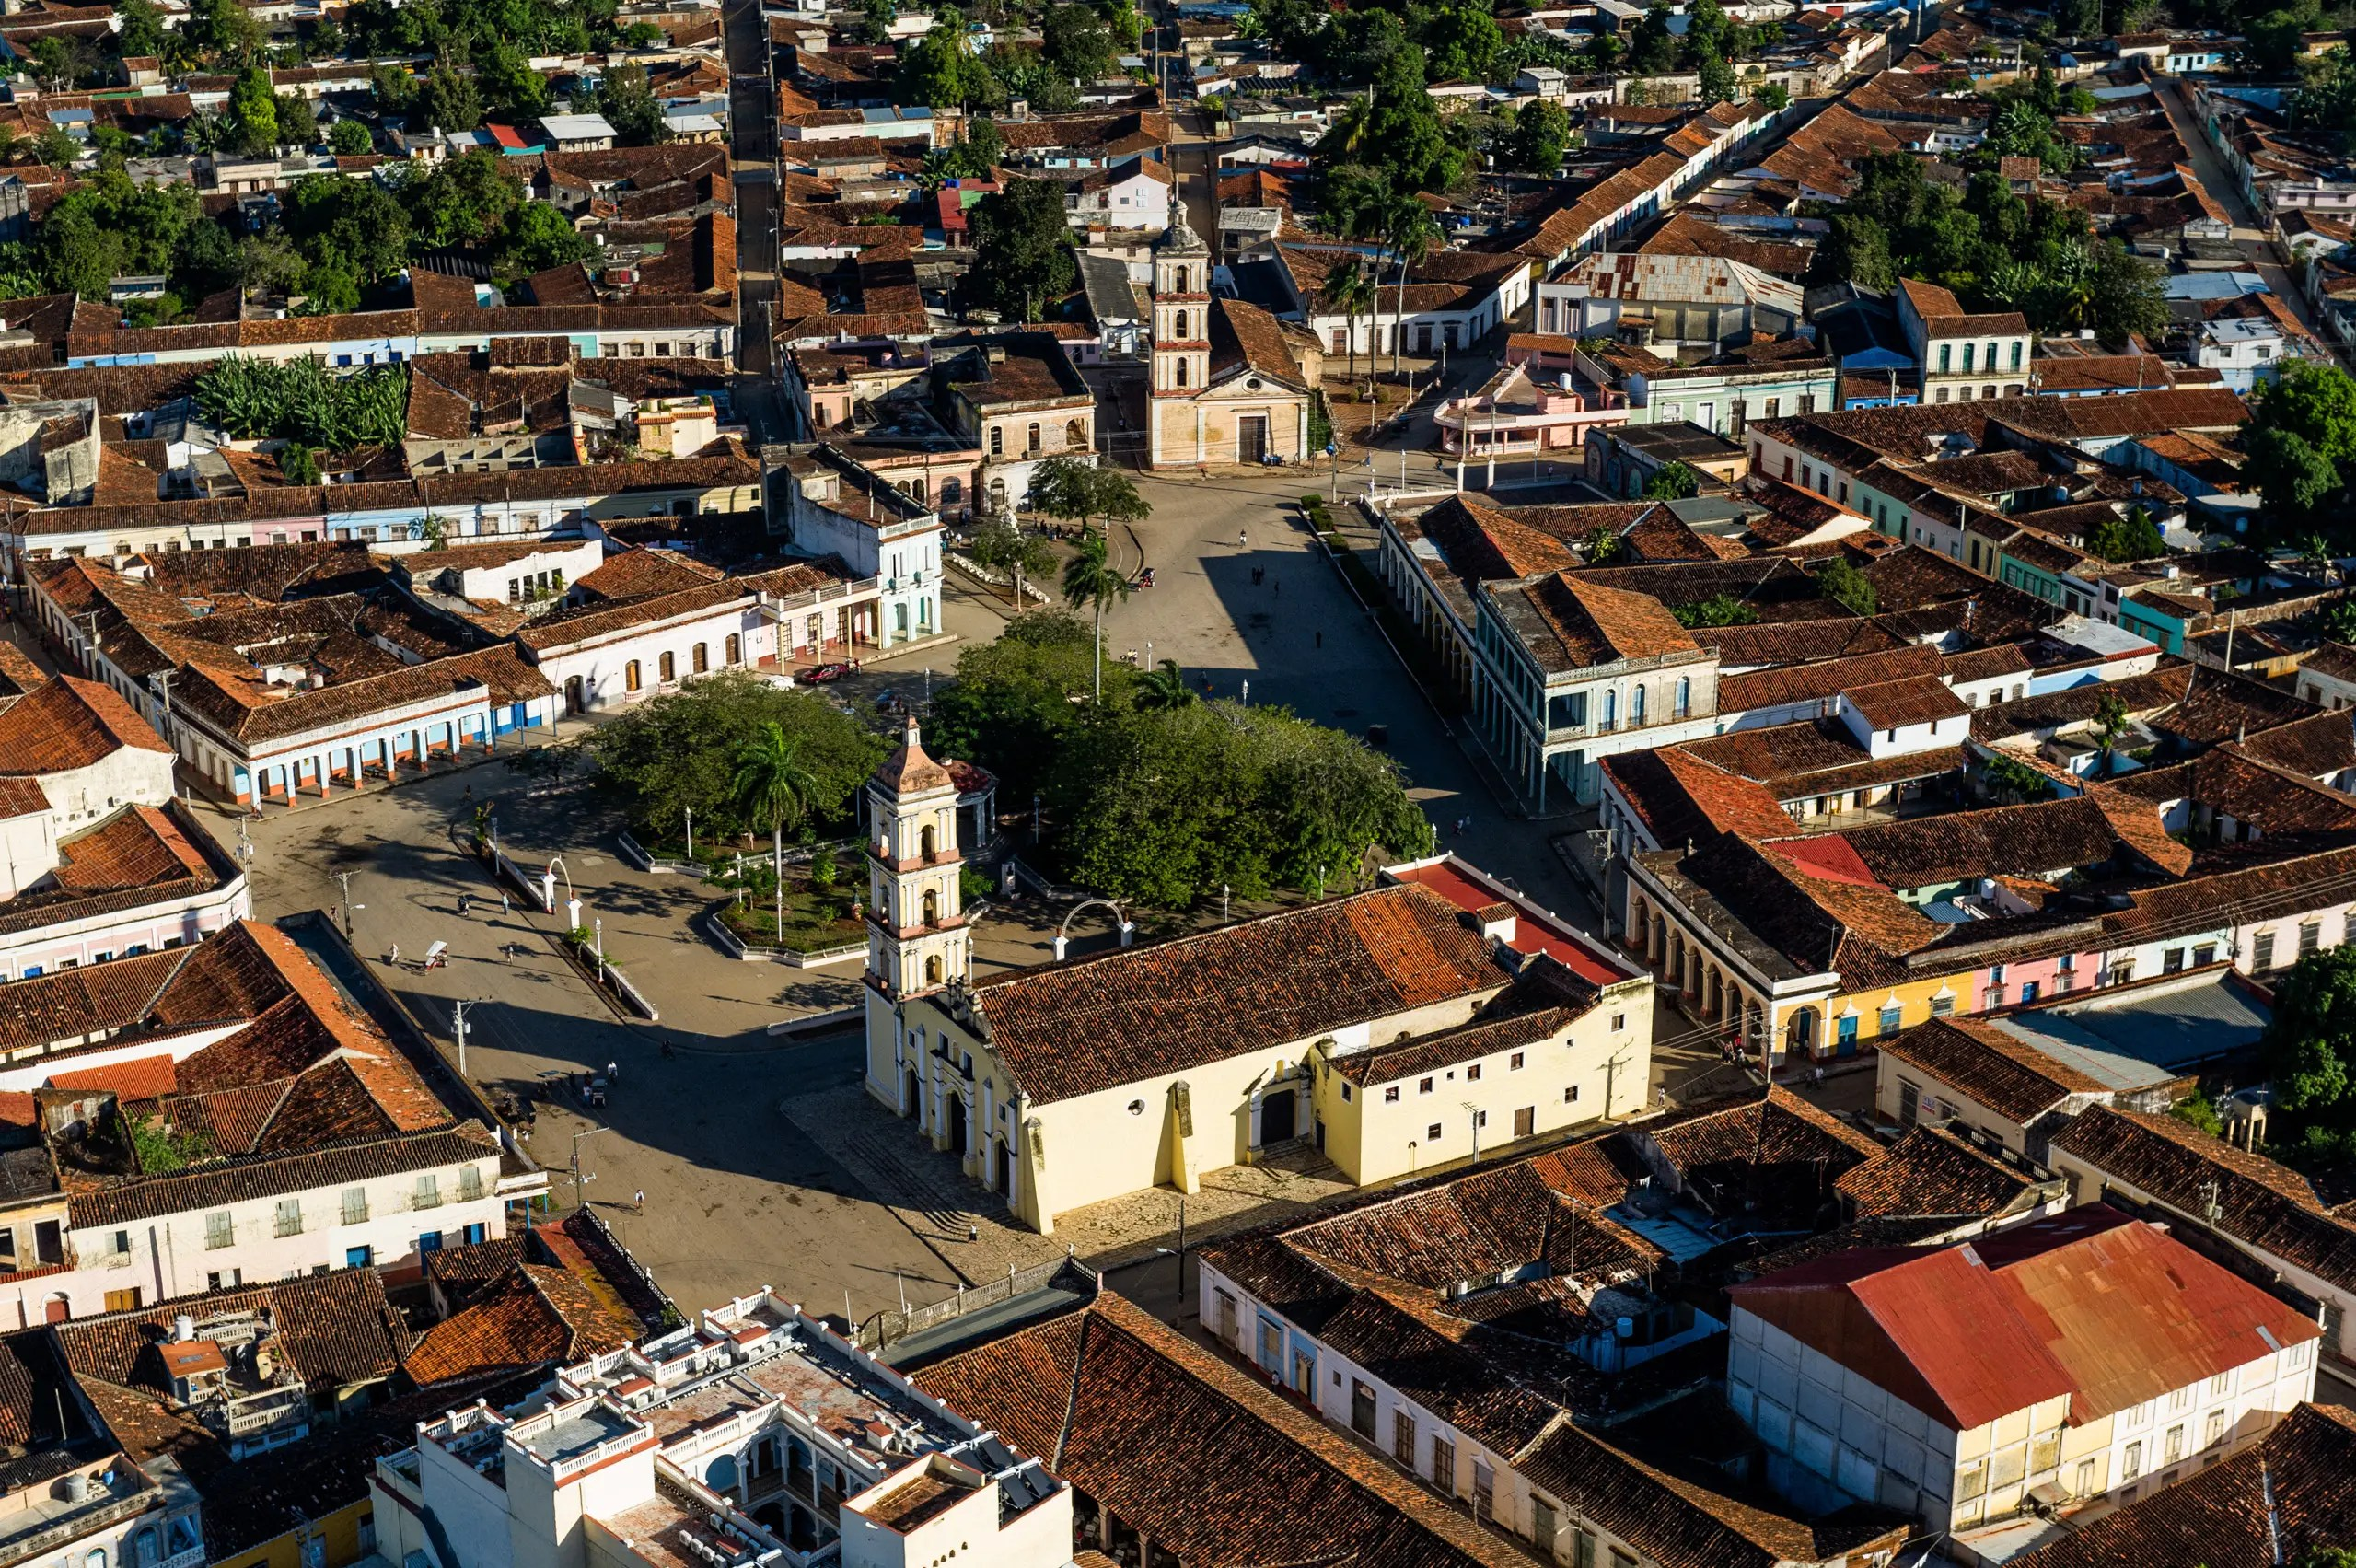 It took two years for Jovaisa to gain approval from the Cuban government to photograph the country from the air.